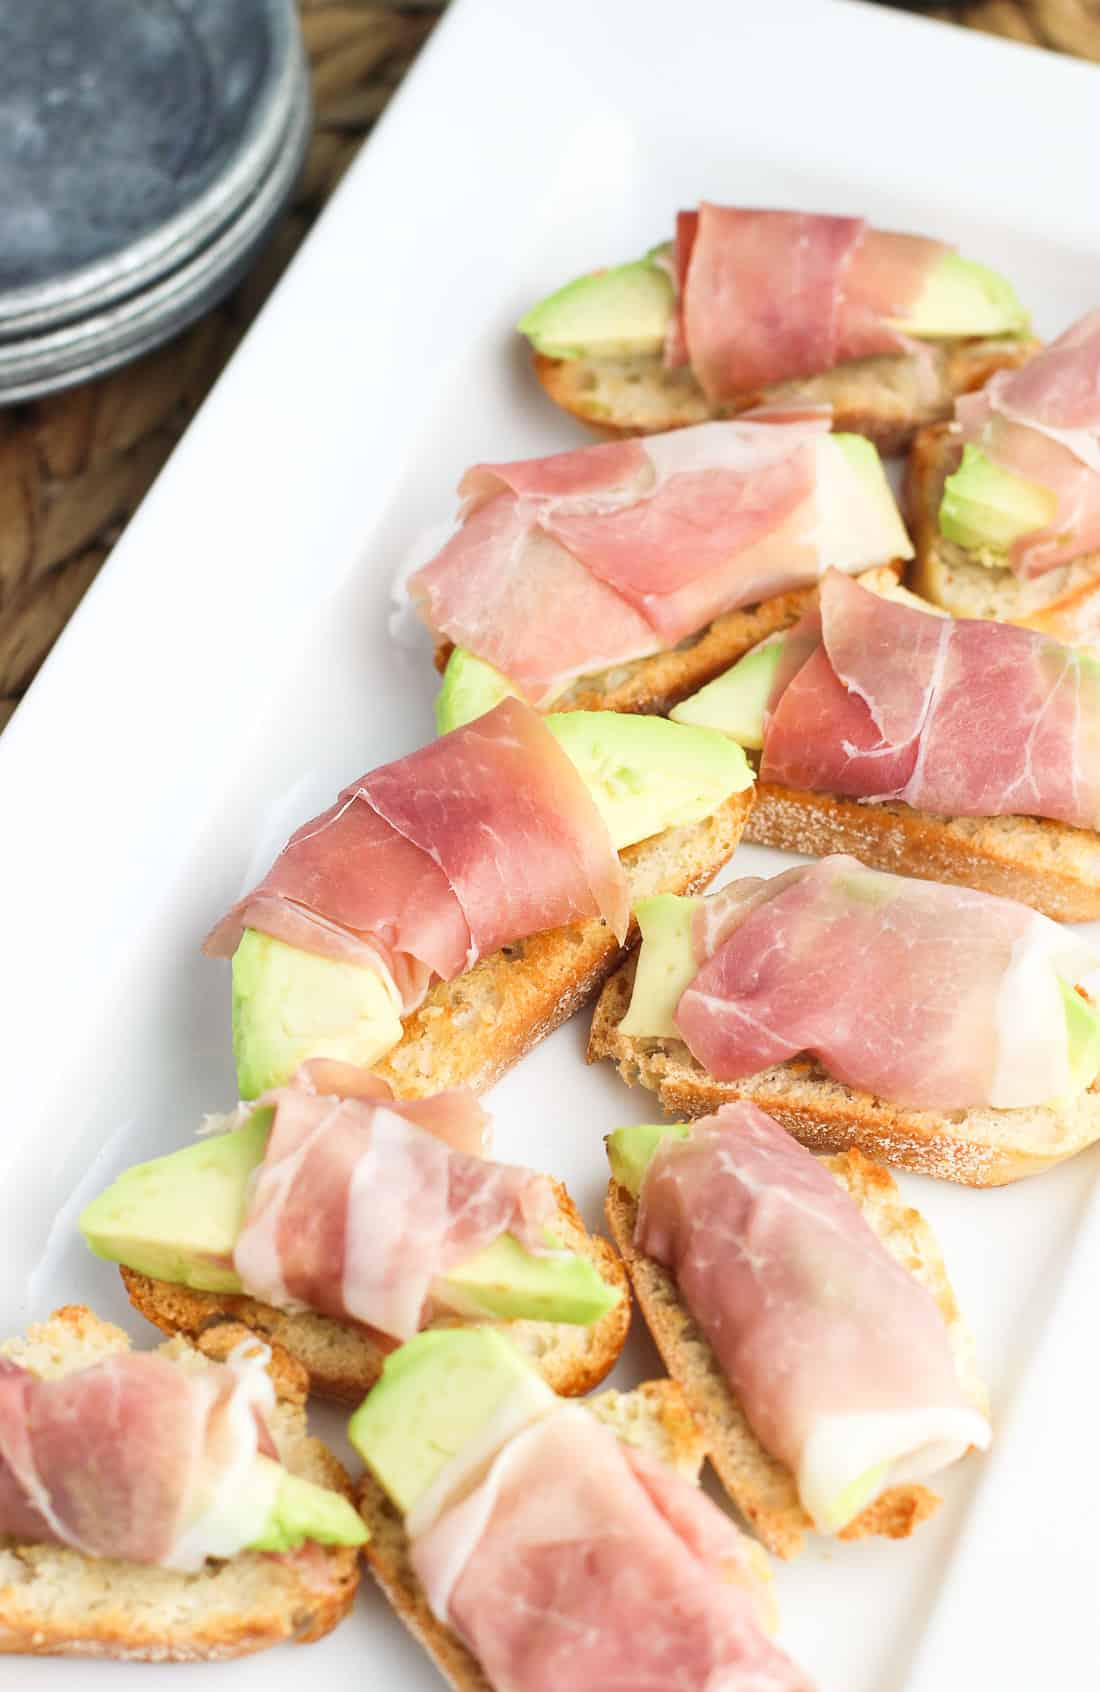 Prosciutto avocado crostini lined up on a serving tray before adding balsamic glaze.